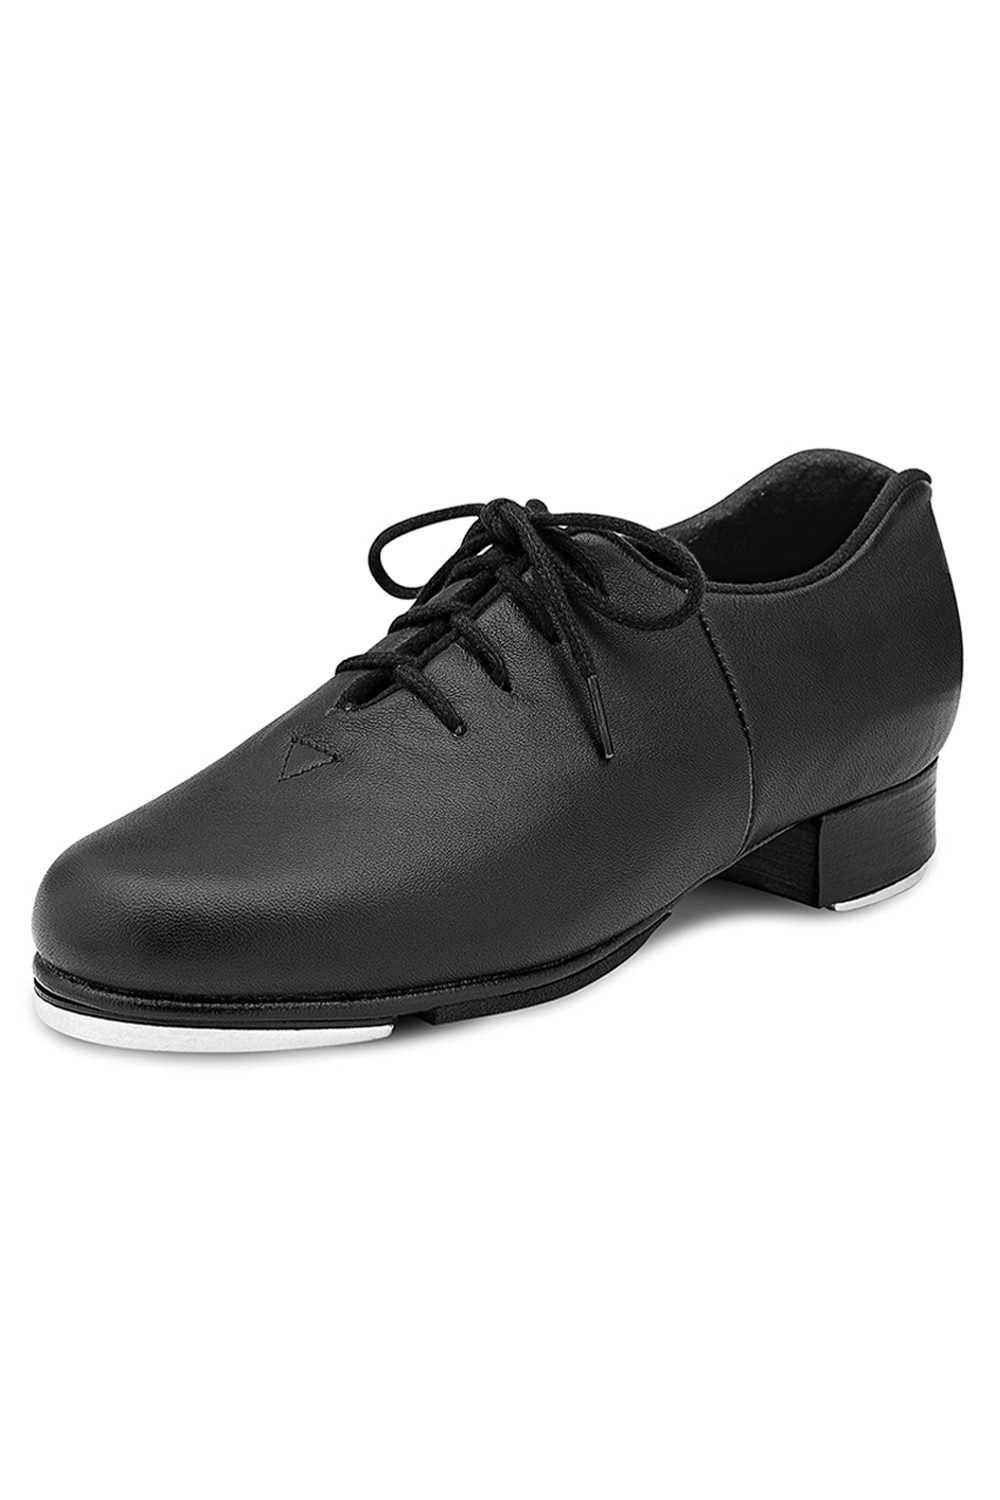 Audeo Jazz Tap   Women's Tap Shoes